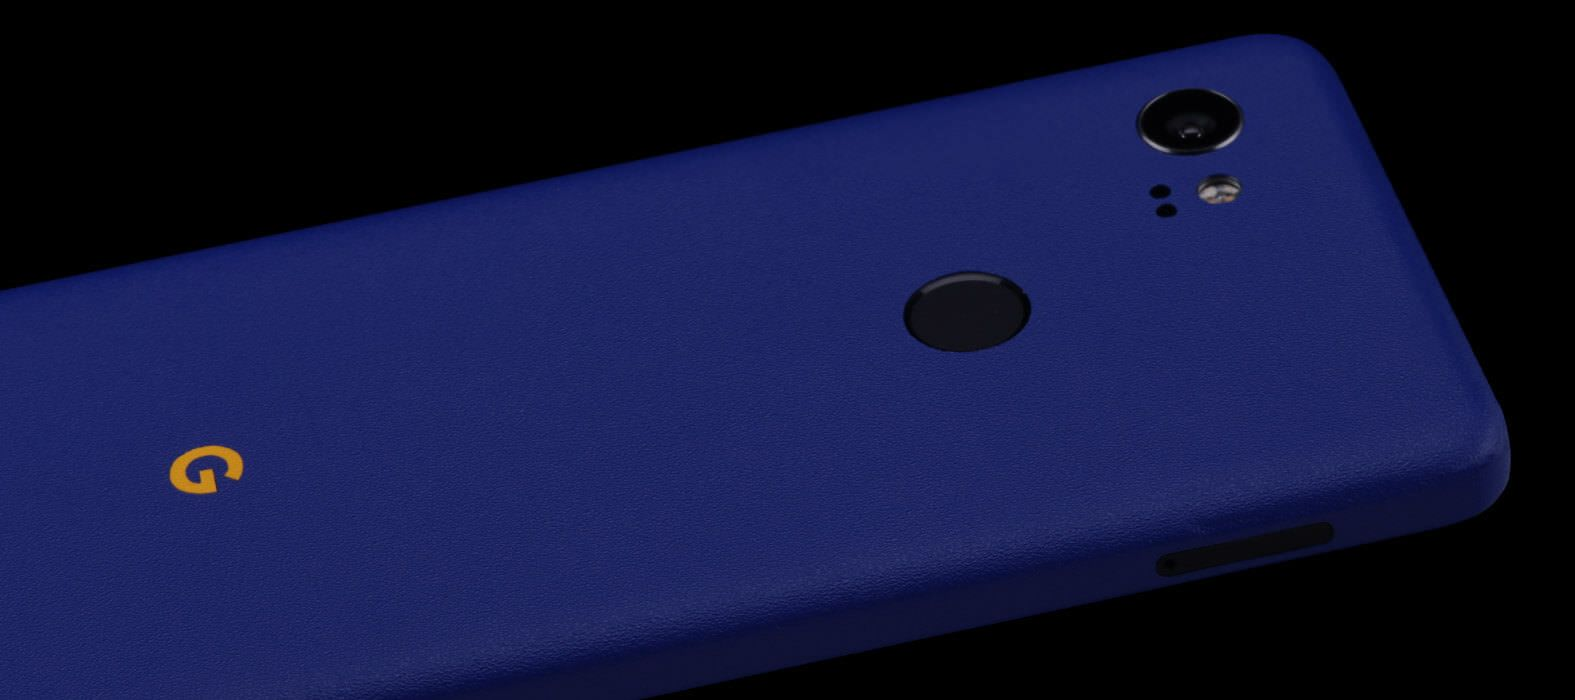 Pixel 2 XL Skins Sandstone Blue Wraps & Decals